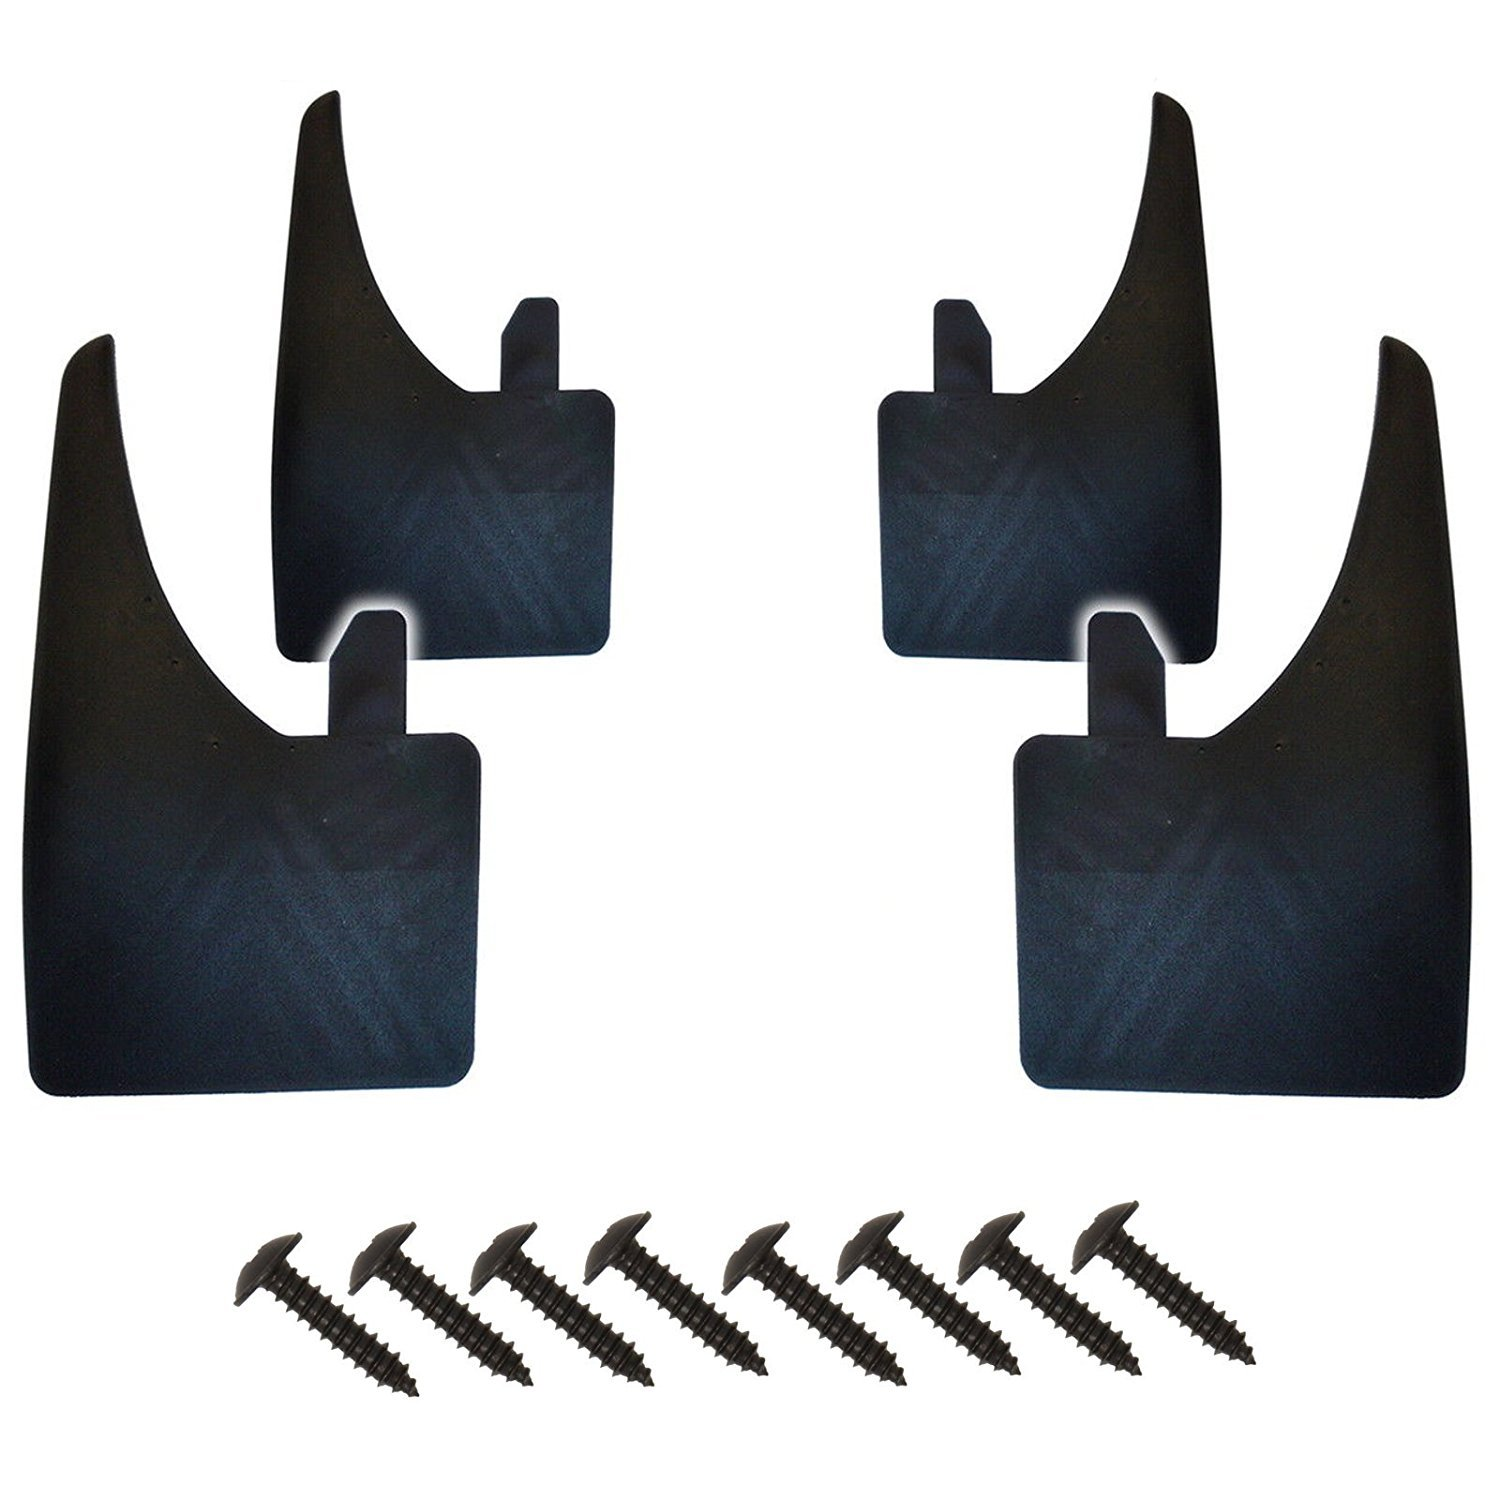 4 Universal Fit Black Front and Rear Wide Mudflaps Complete With Mounting Screws - Easy Fit Rubber Mud Flaps/Guards ASC